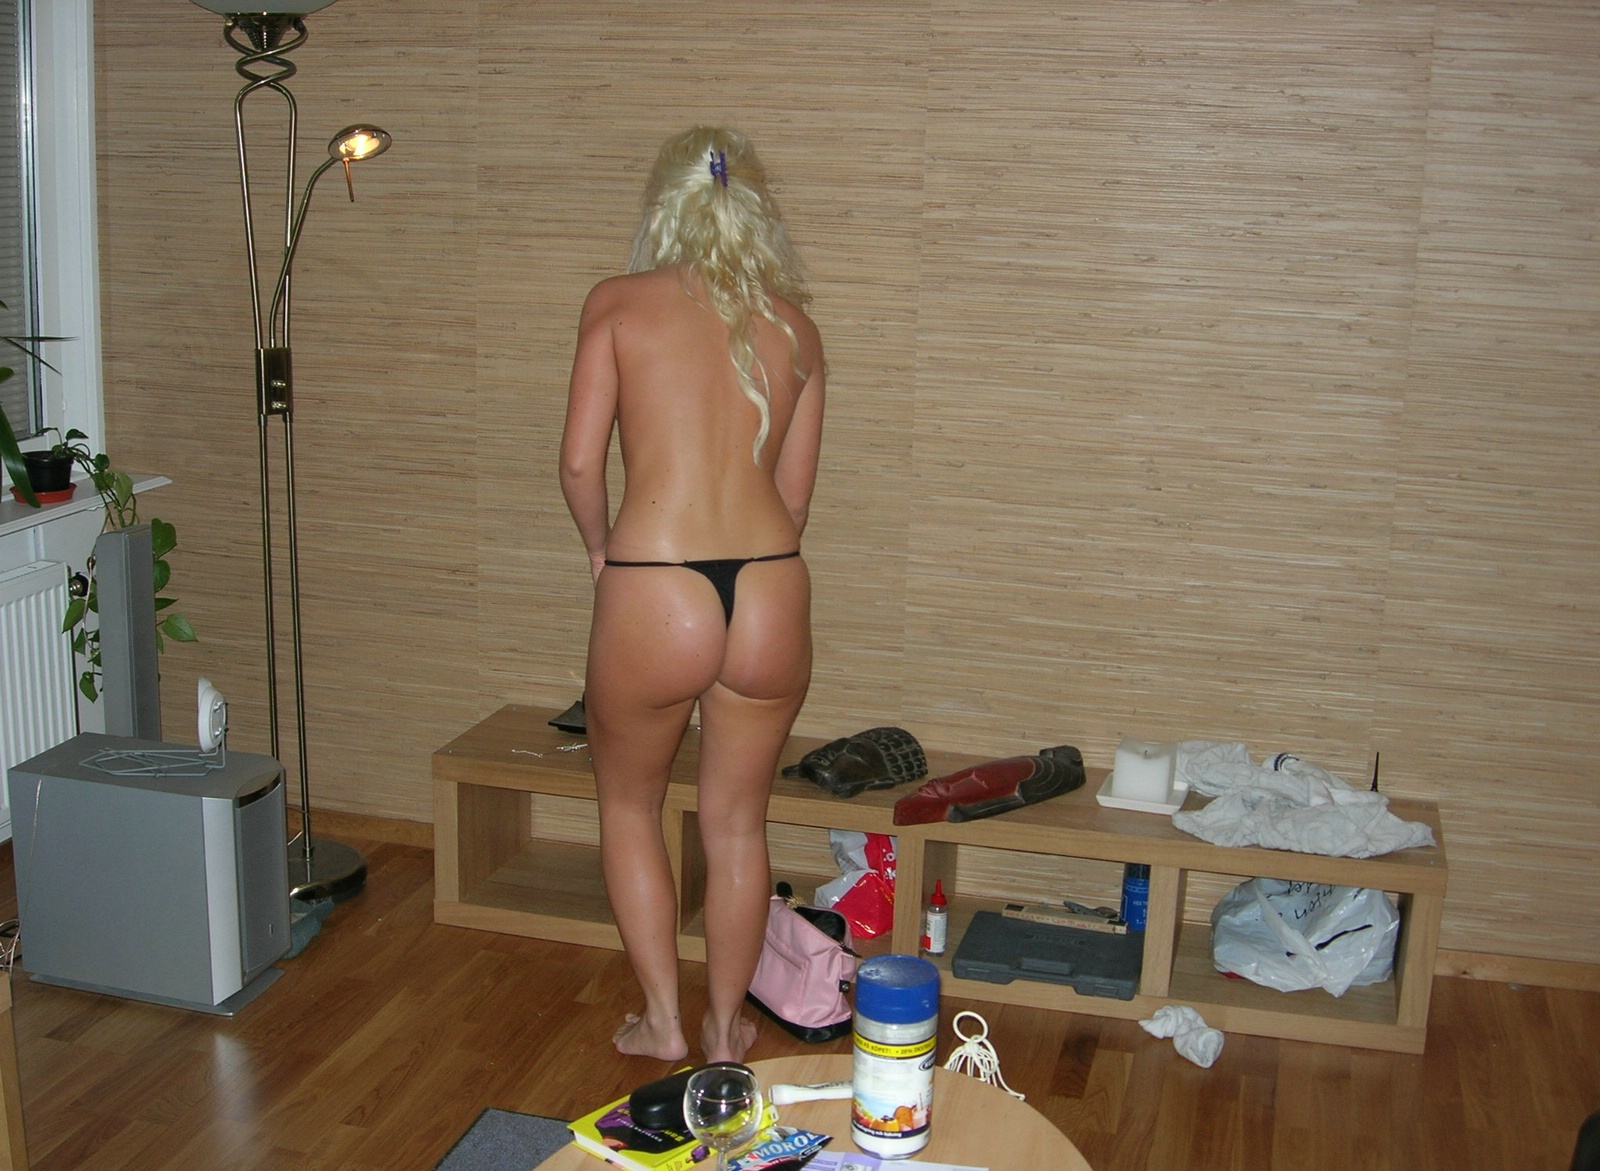 blonde-amateur-girl-from-sweden-young-naked-01